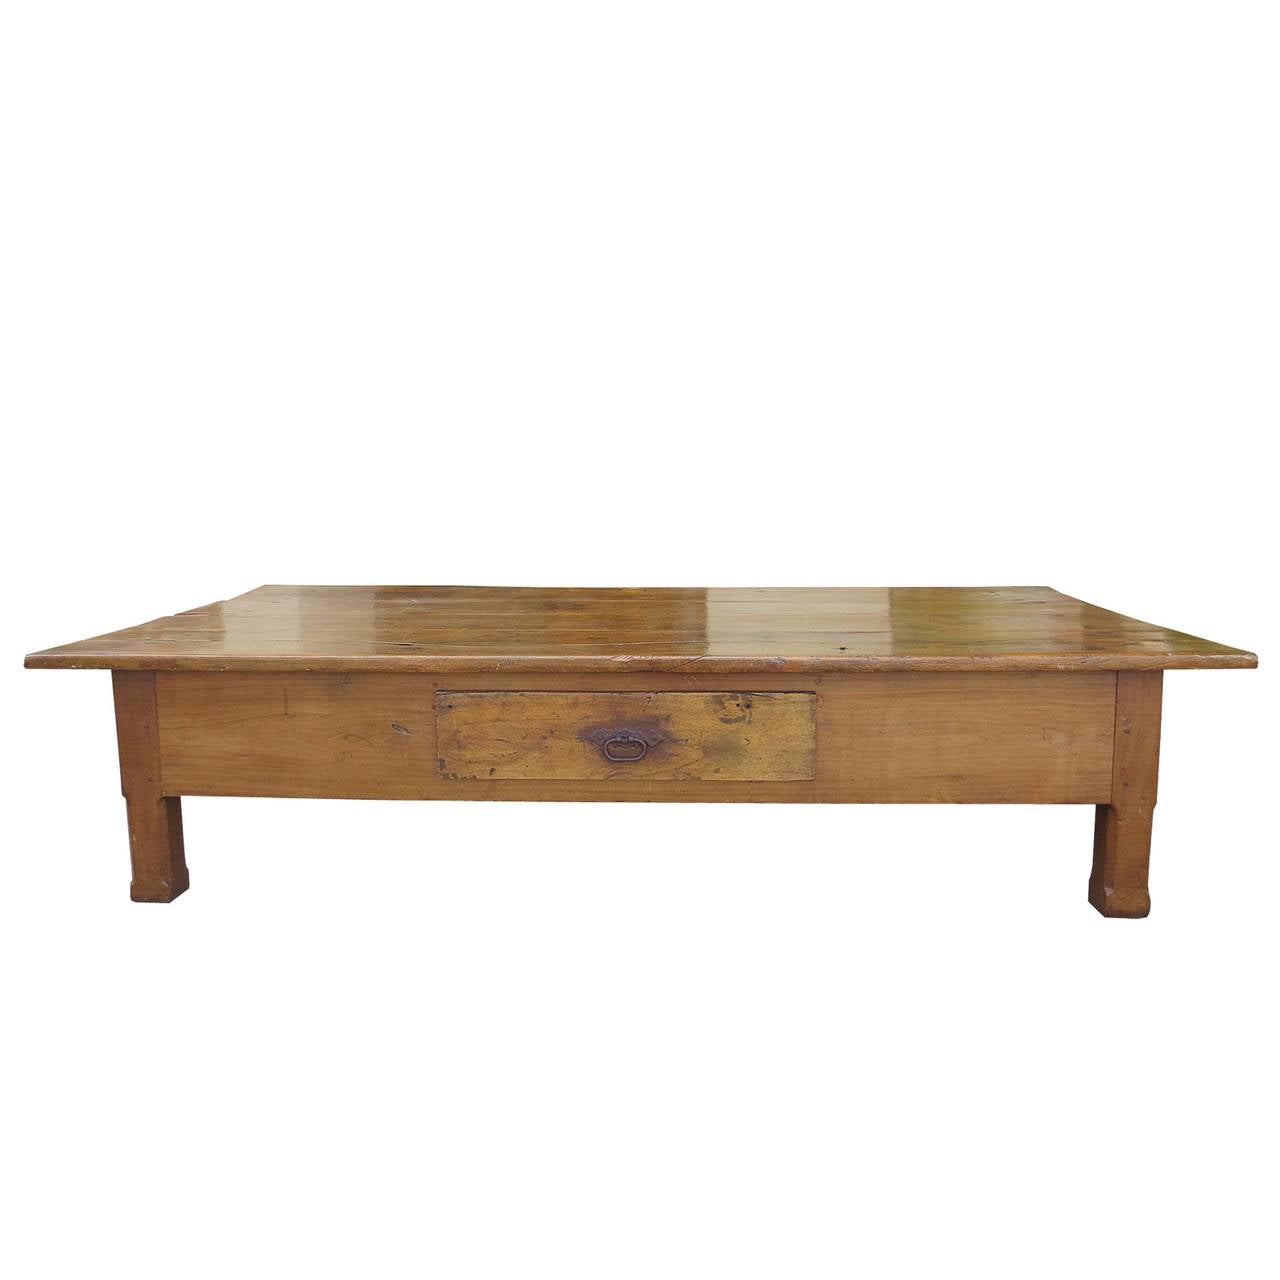 19th century french jumbo fruitwood coffee table with drawer at 1stdibs